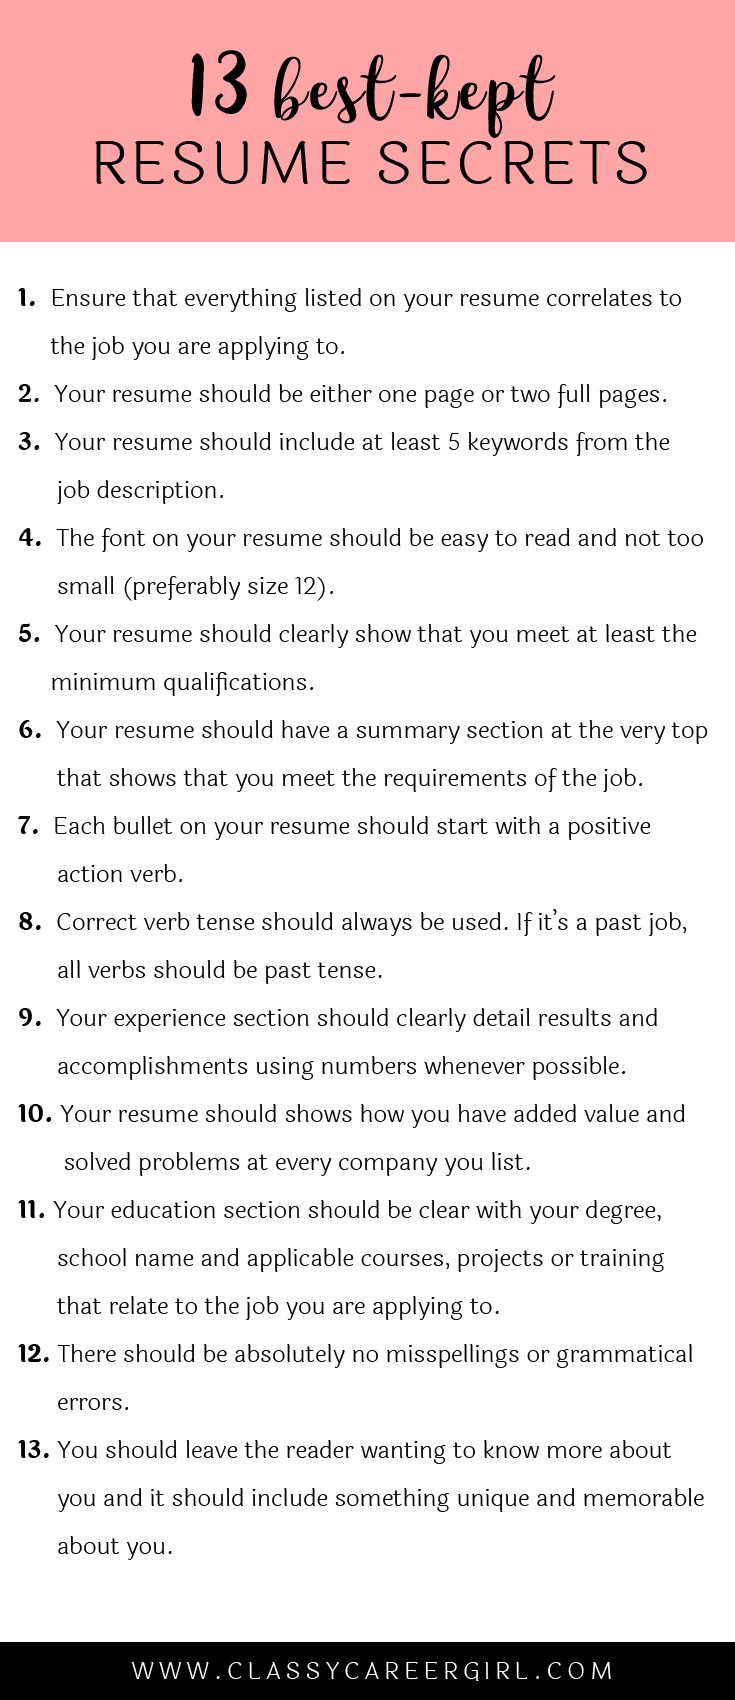 Opposenewapstandardsus  Unique  Ideas About Resume On Pinterest  Cv Format Resume  With Gorgeous Some Hiring Managers Will Toss Your Resume Out If You Dont Know These  With Agreeable Zookeeper Resume Also Sample Software Developer Resume In Addition Powerful Resume And Key Qualifications In A Resume As Well As Post Resume On Craigslist Additionally Interesting Resume From Pinterestcom With Opposenewapstandardsus  Gorgeous  Ideas About Resume On Pinterest  Cv Format Resume  With Agreeable Some Hiring Managers Will Toss Your Resume Out If You Dont Know These  And Unique Zookeeper Resume Also Sample Software Developer Resume In Addition Powerful Resume From Pinterestcom